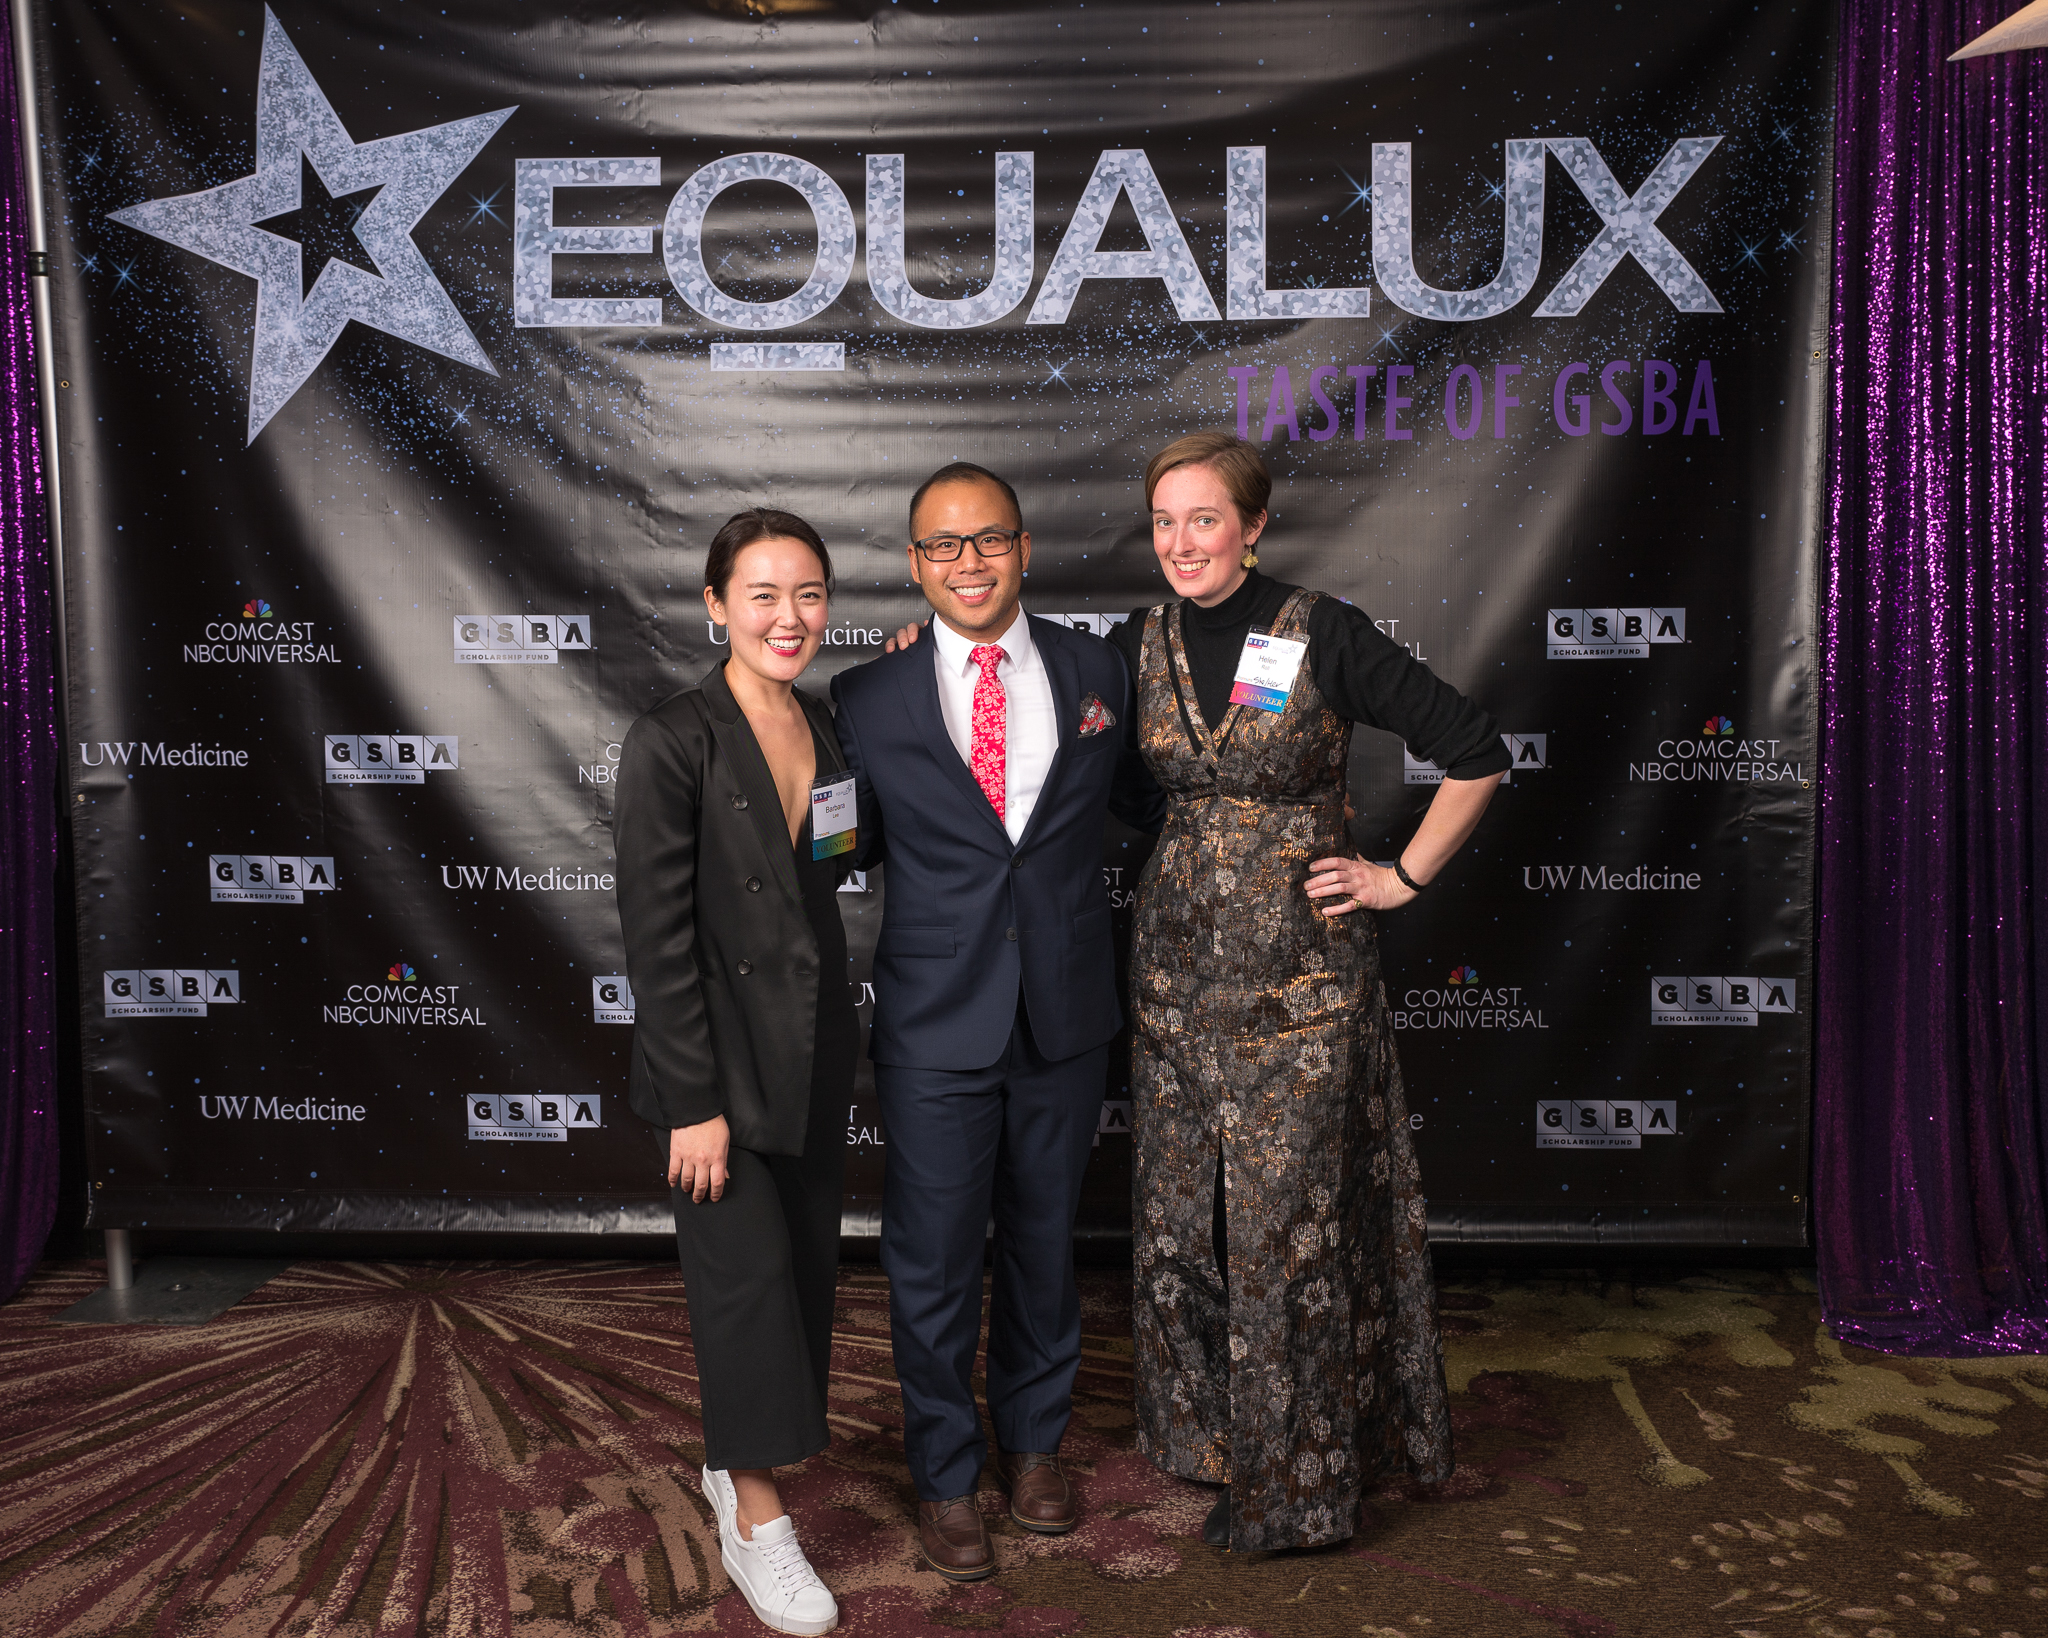 111718_GSBA EQUALUX at The Westin Seattle (Credit- Nate Gowdy)-130.jpg